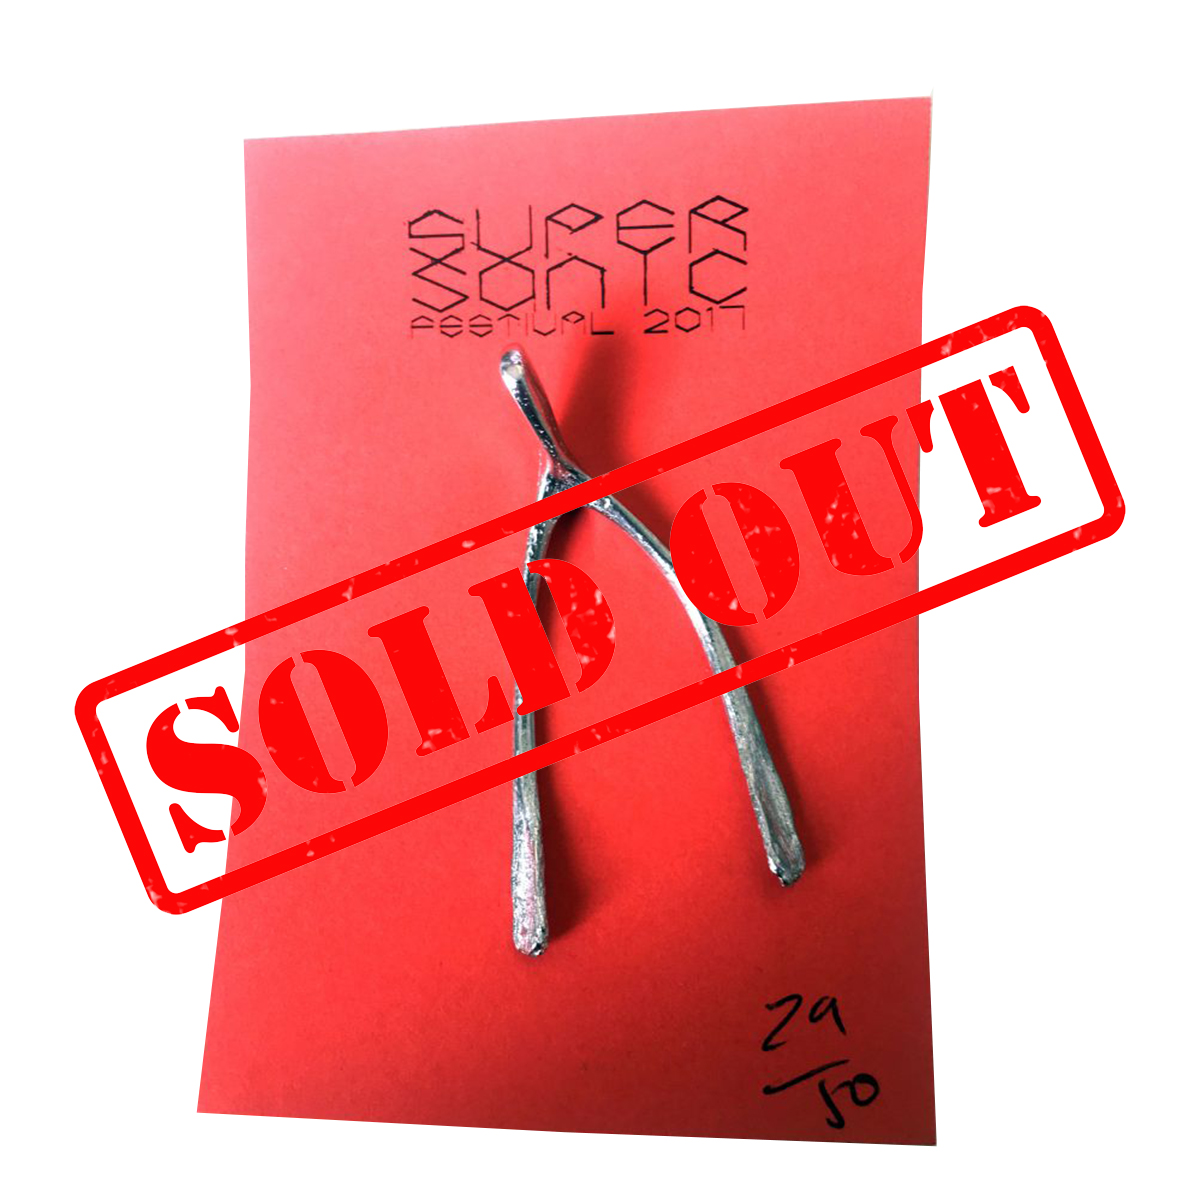 2017 Supersonic Festival brooch